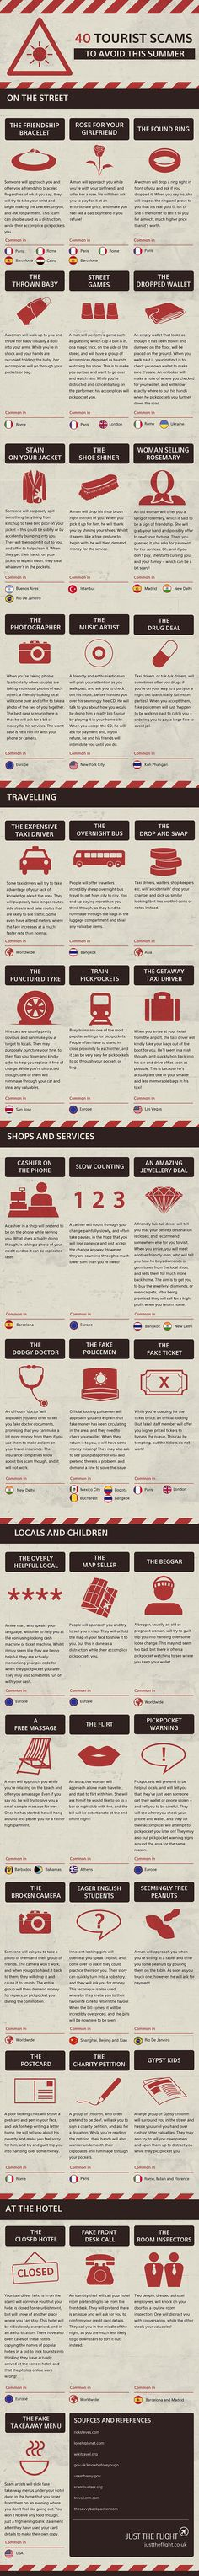 From taxi drivers who steal your luggage in Vegas, to the street games pickpocket in Paris: Infographic reveals the top 40 tourist scams to watch out for this summer